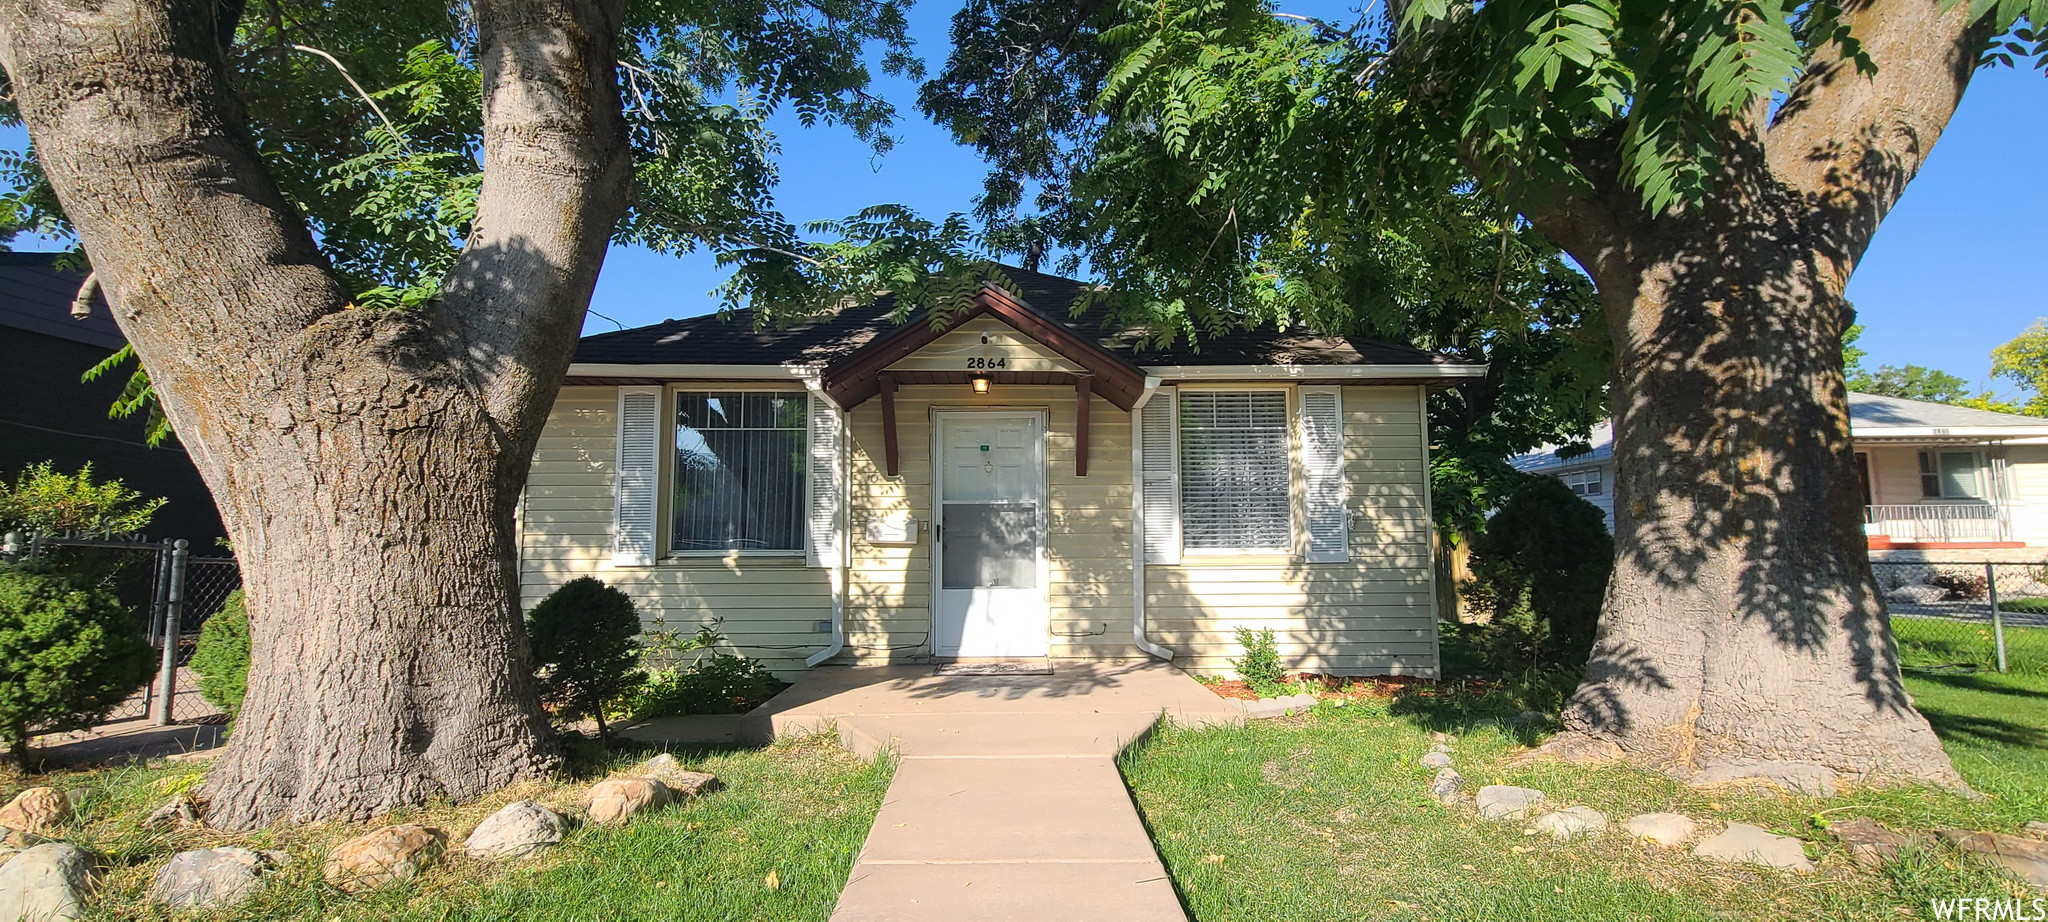 Renovated 2-Bedroom House In South Salt Lake City